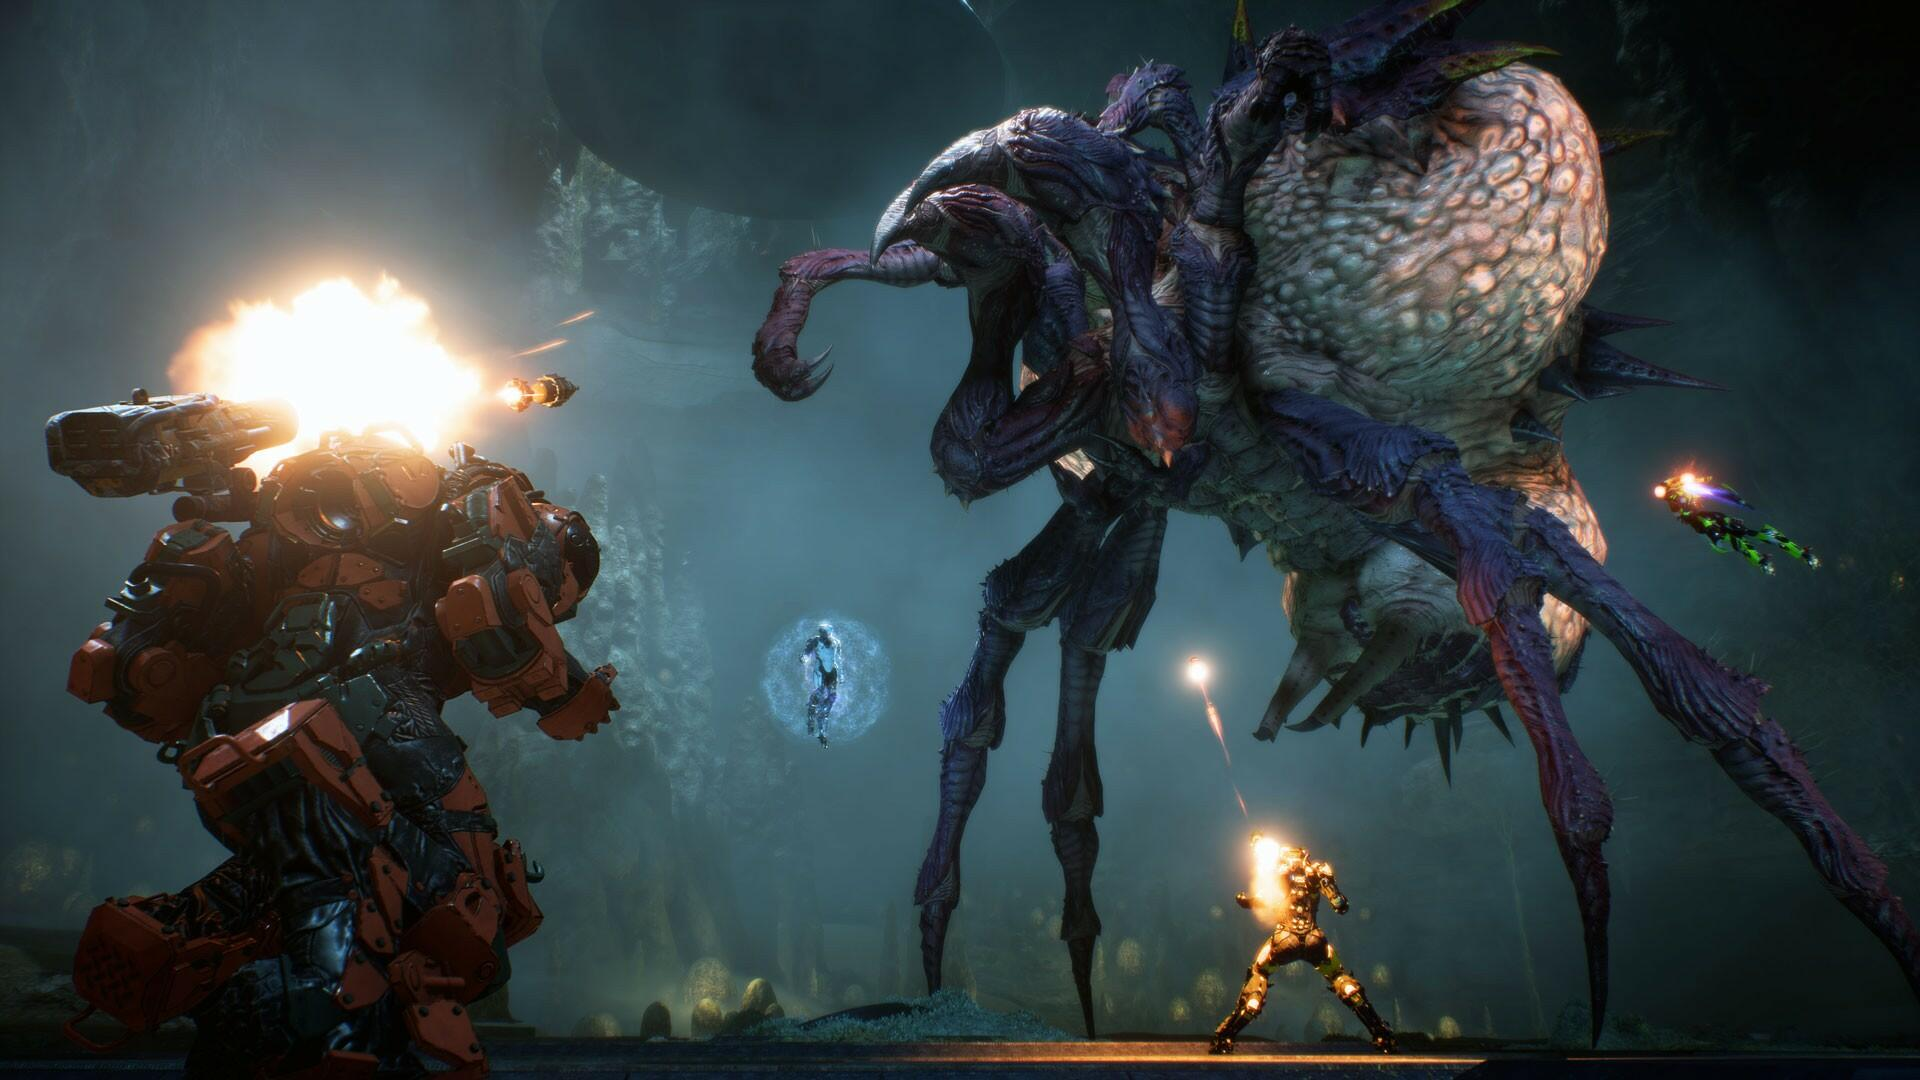 In-Depth With Anthem's Endgame, Which EA Promises is Really Good